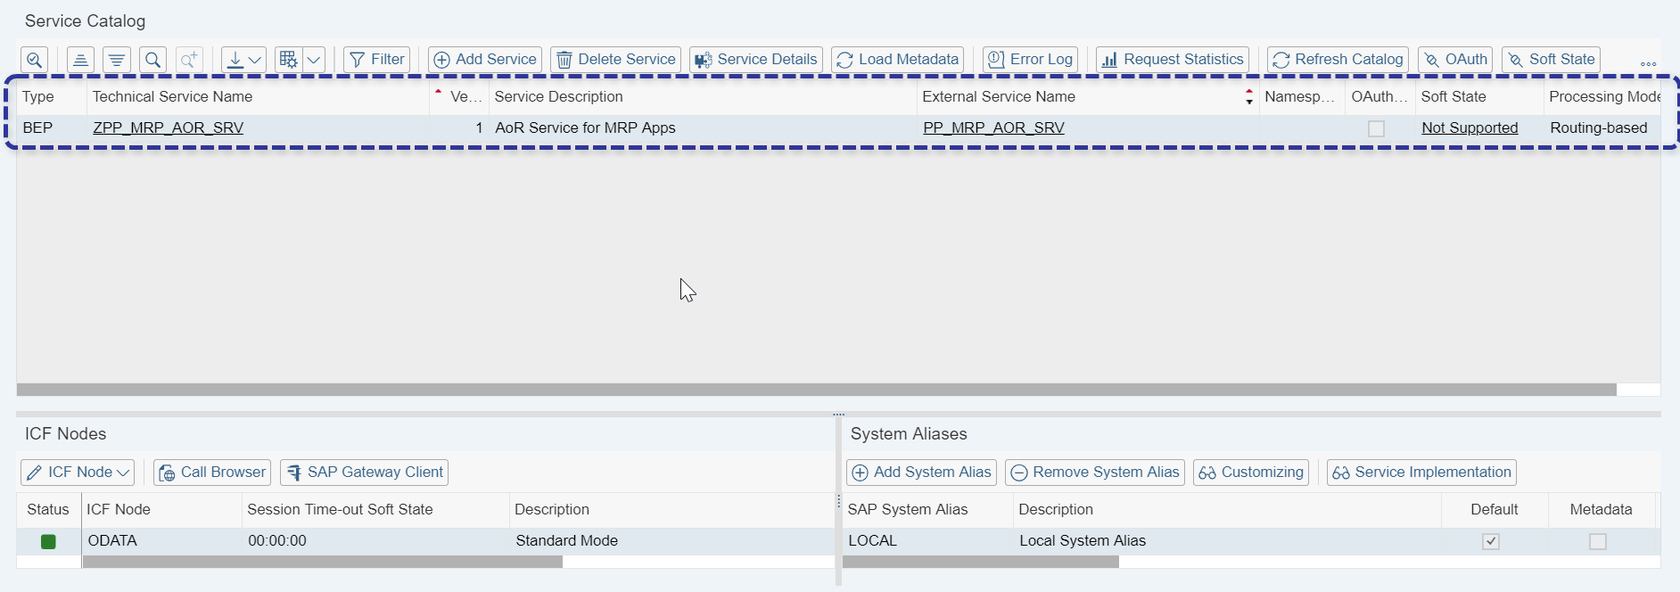 """Fiori App Error – """"Could not open app. Try again later"""" :("""